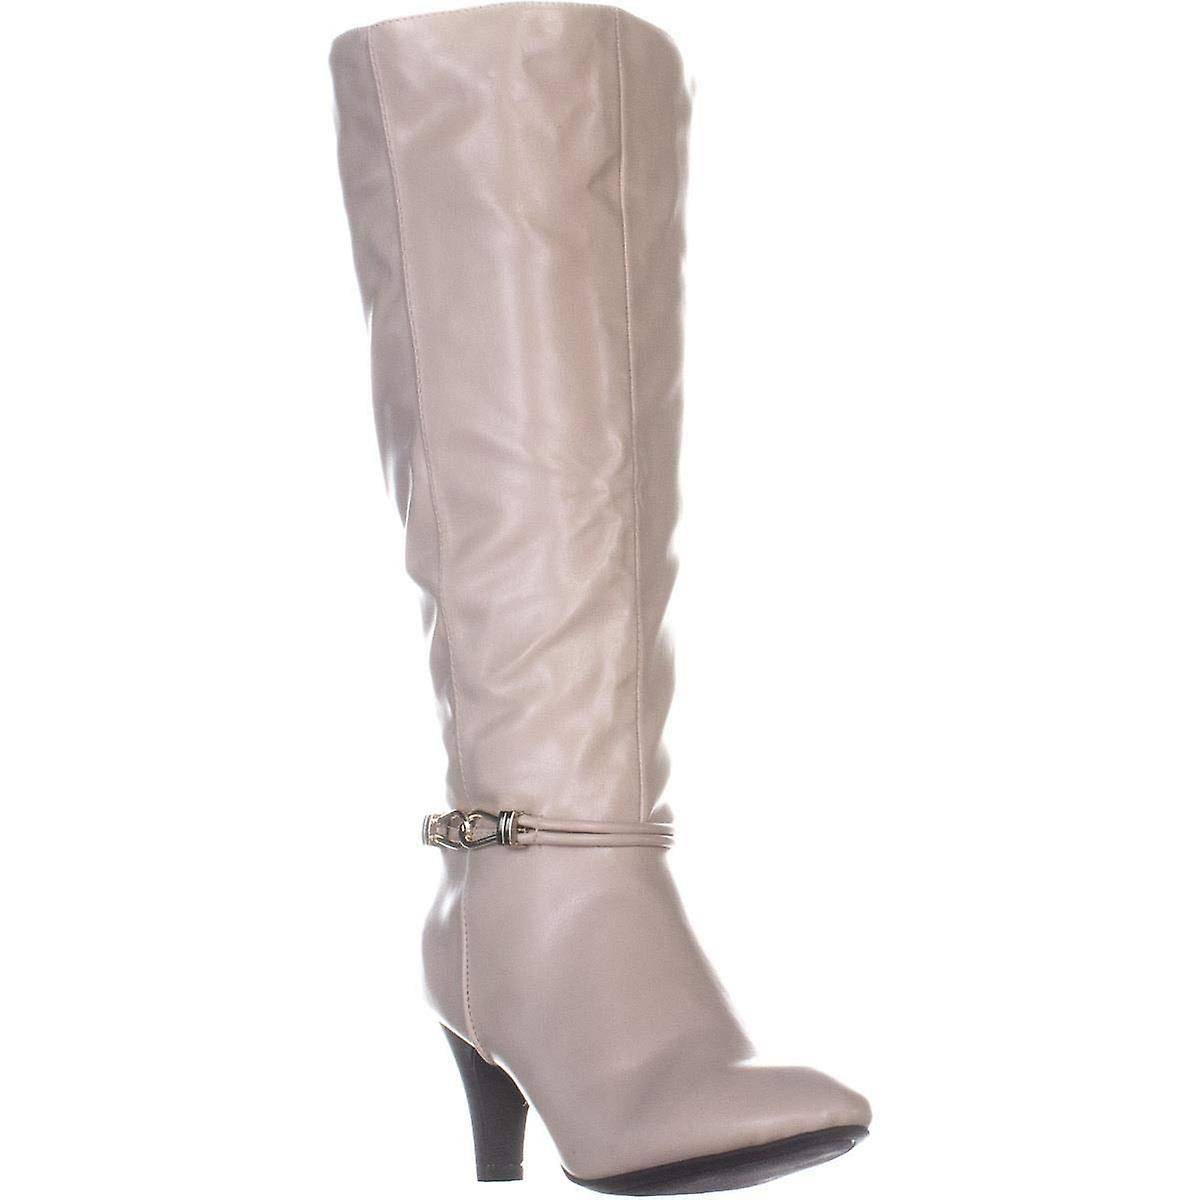 Karen Scott Femmes HOLLEE Cuir Fermé Toe Knee High Fashion Boots Blanc 8 US / 6 UK